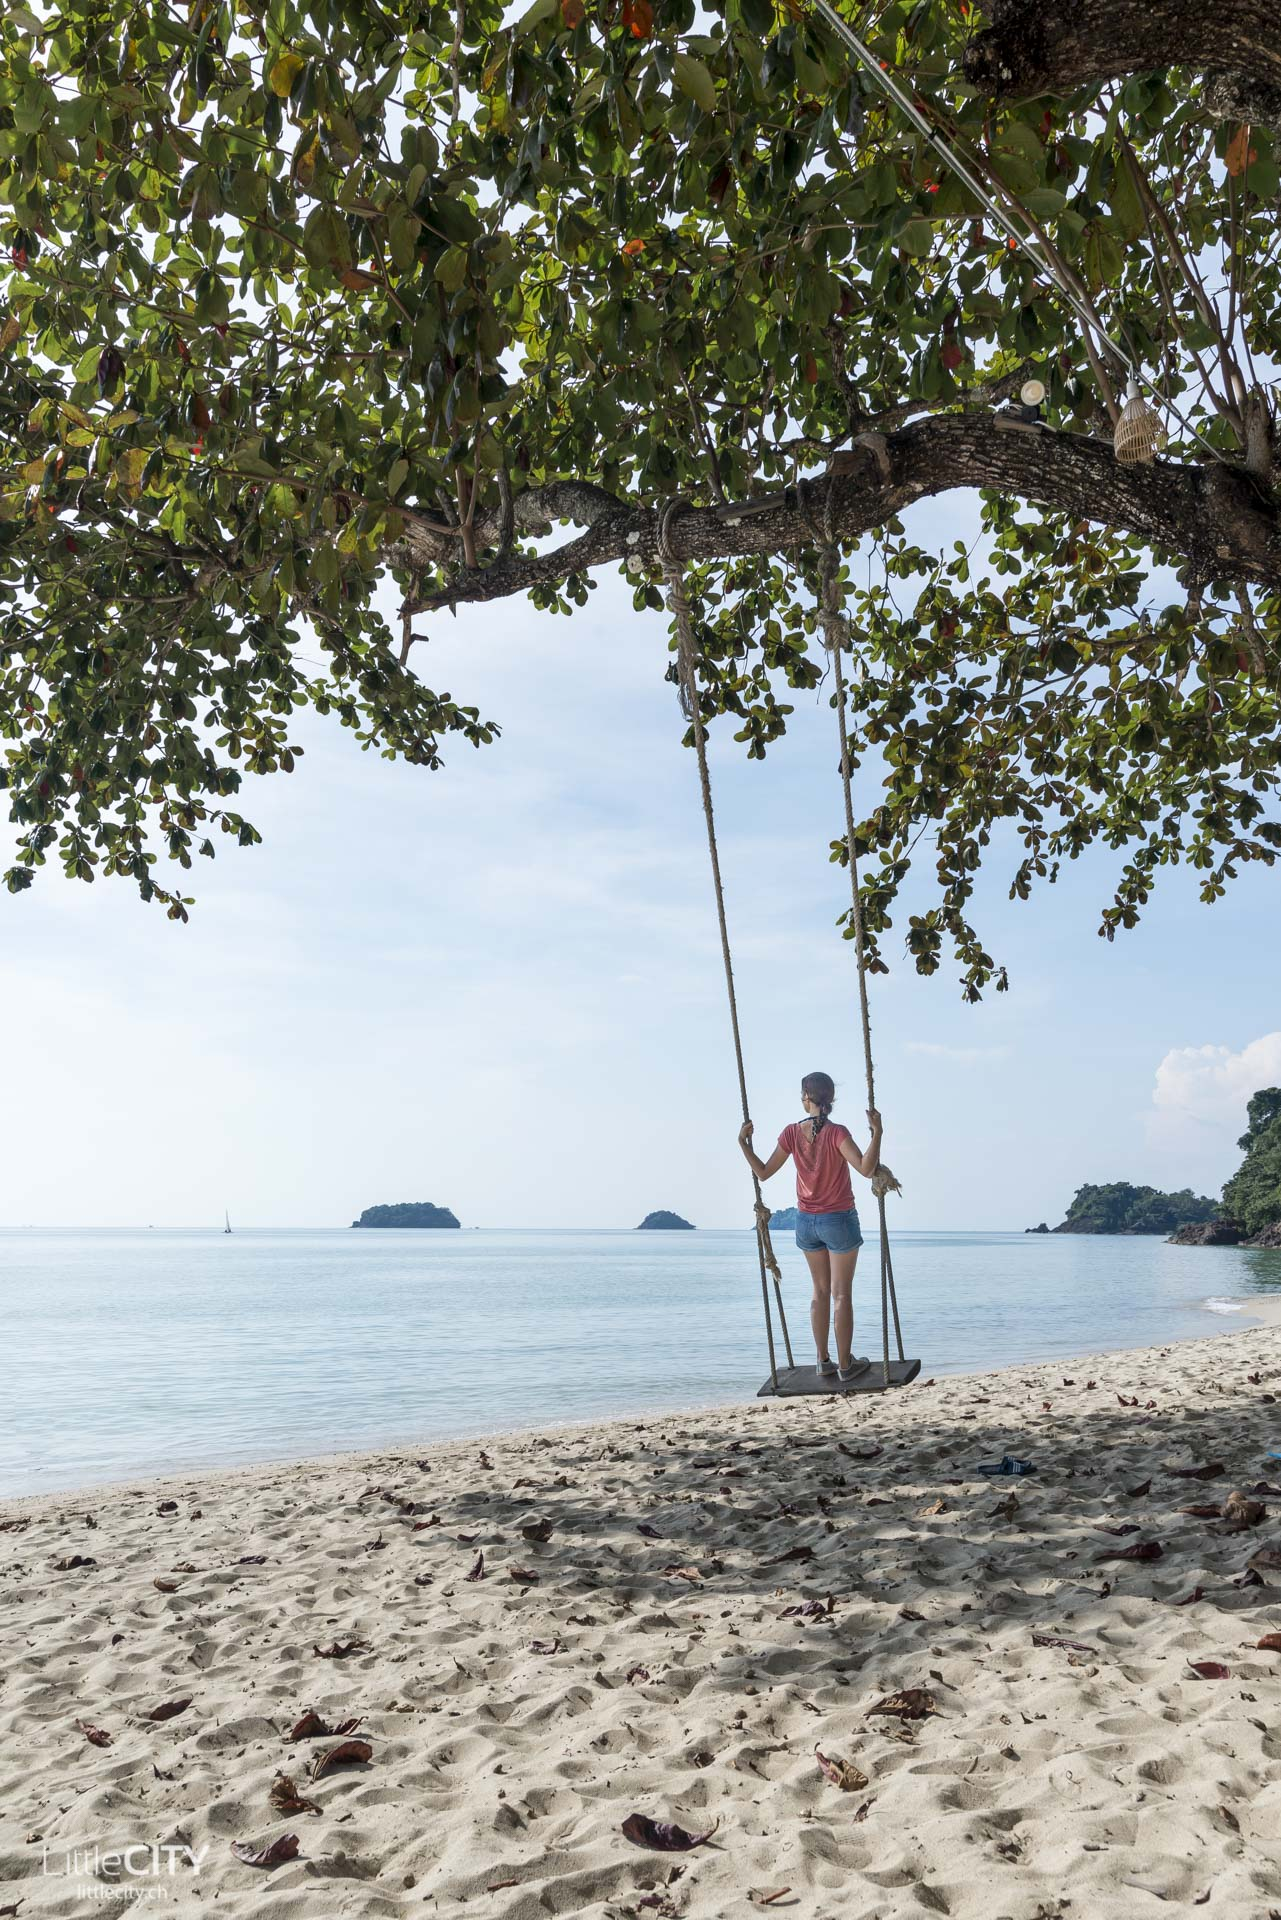 koh-chang-lonely-beach-schaukel